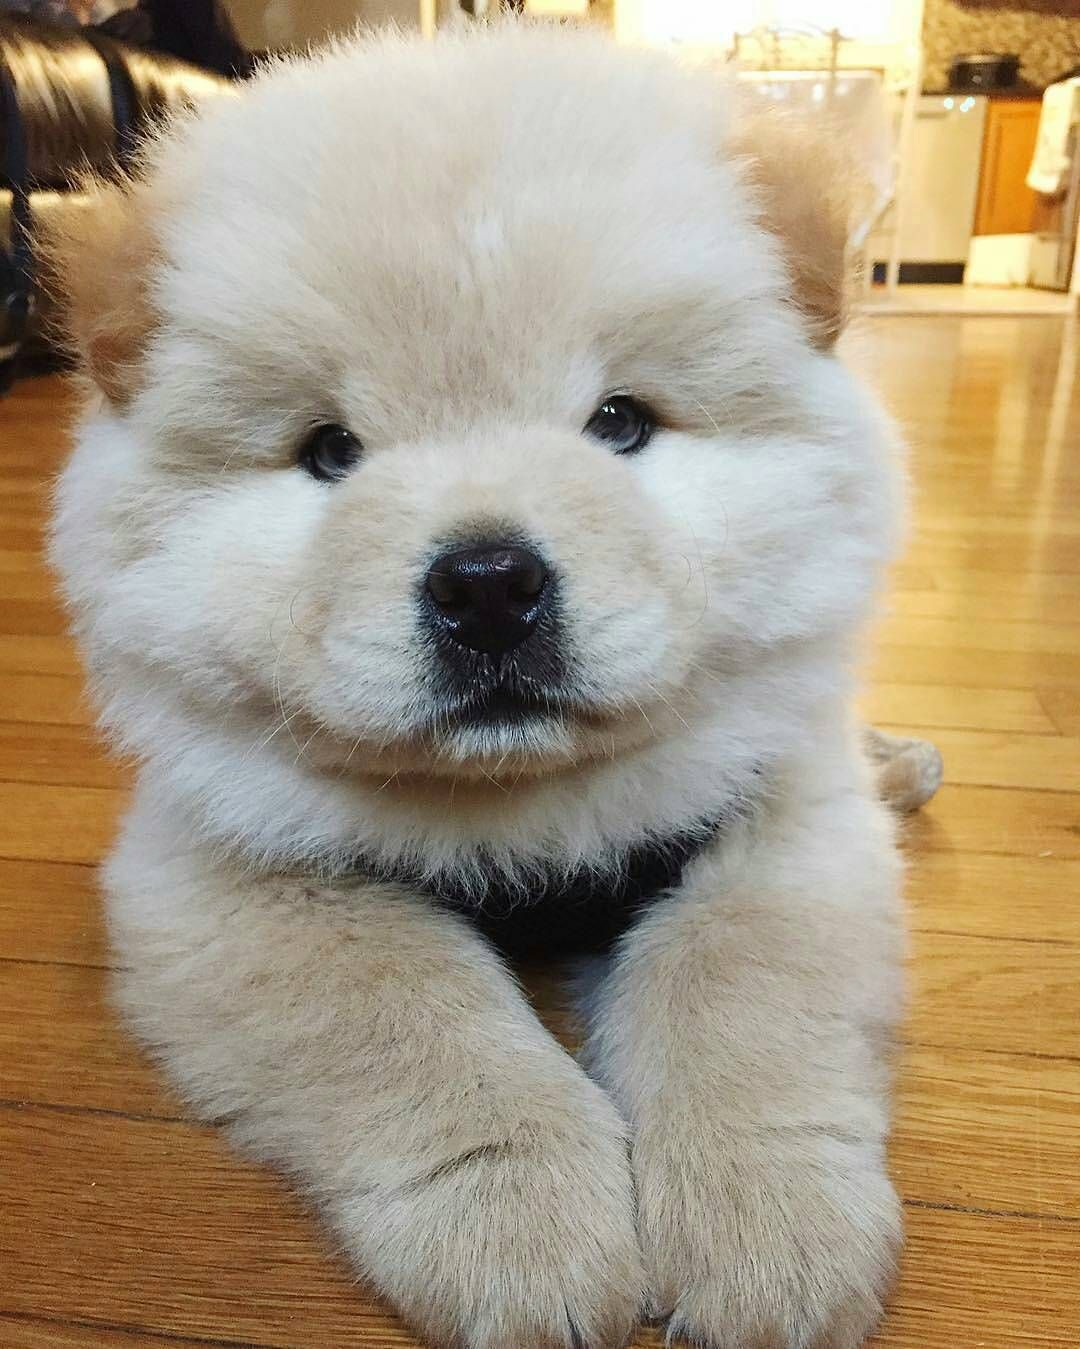 Baby Cream Puff Puppies Cute Baby Animals Cute Animals